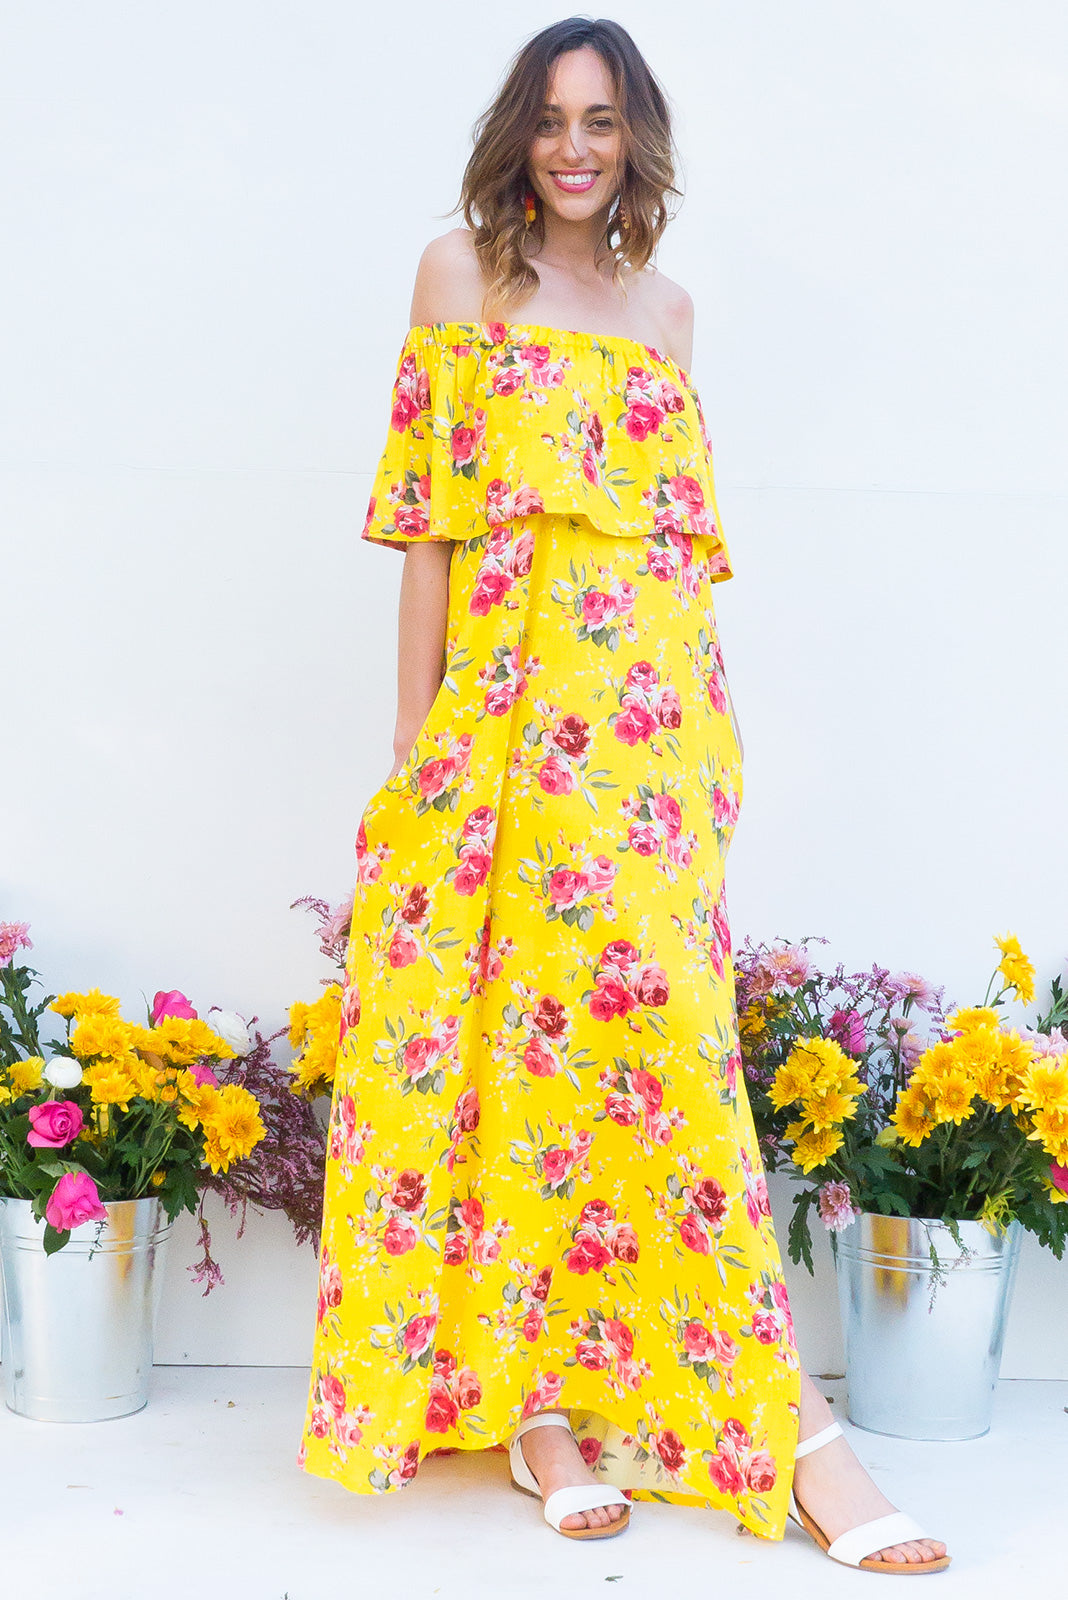 Pachanga Sunshine Yellow Off the shoulder red maxi dress with a frill in bright yellow floral print